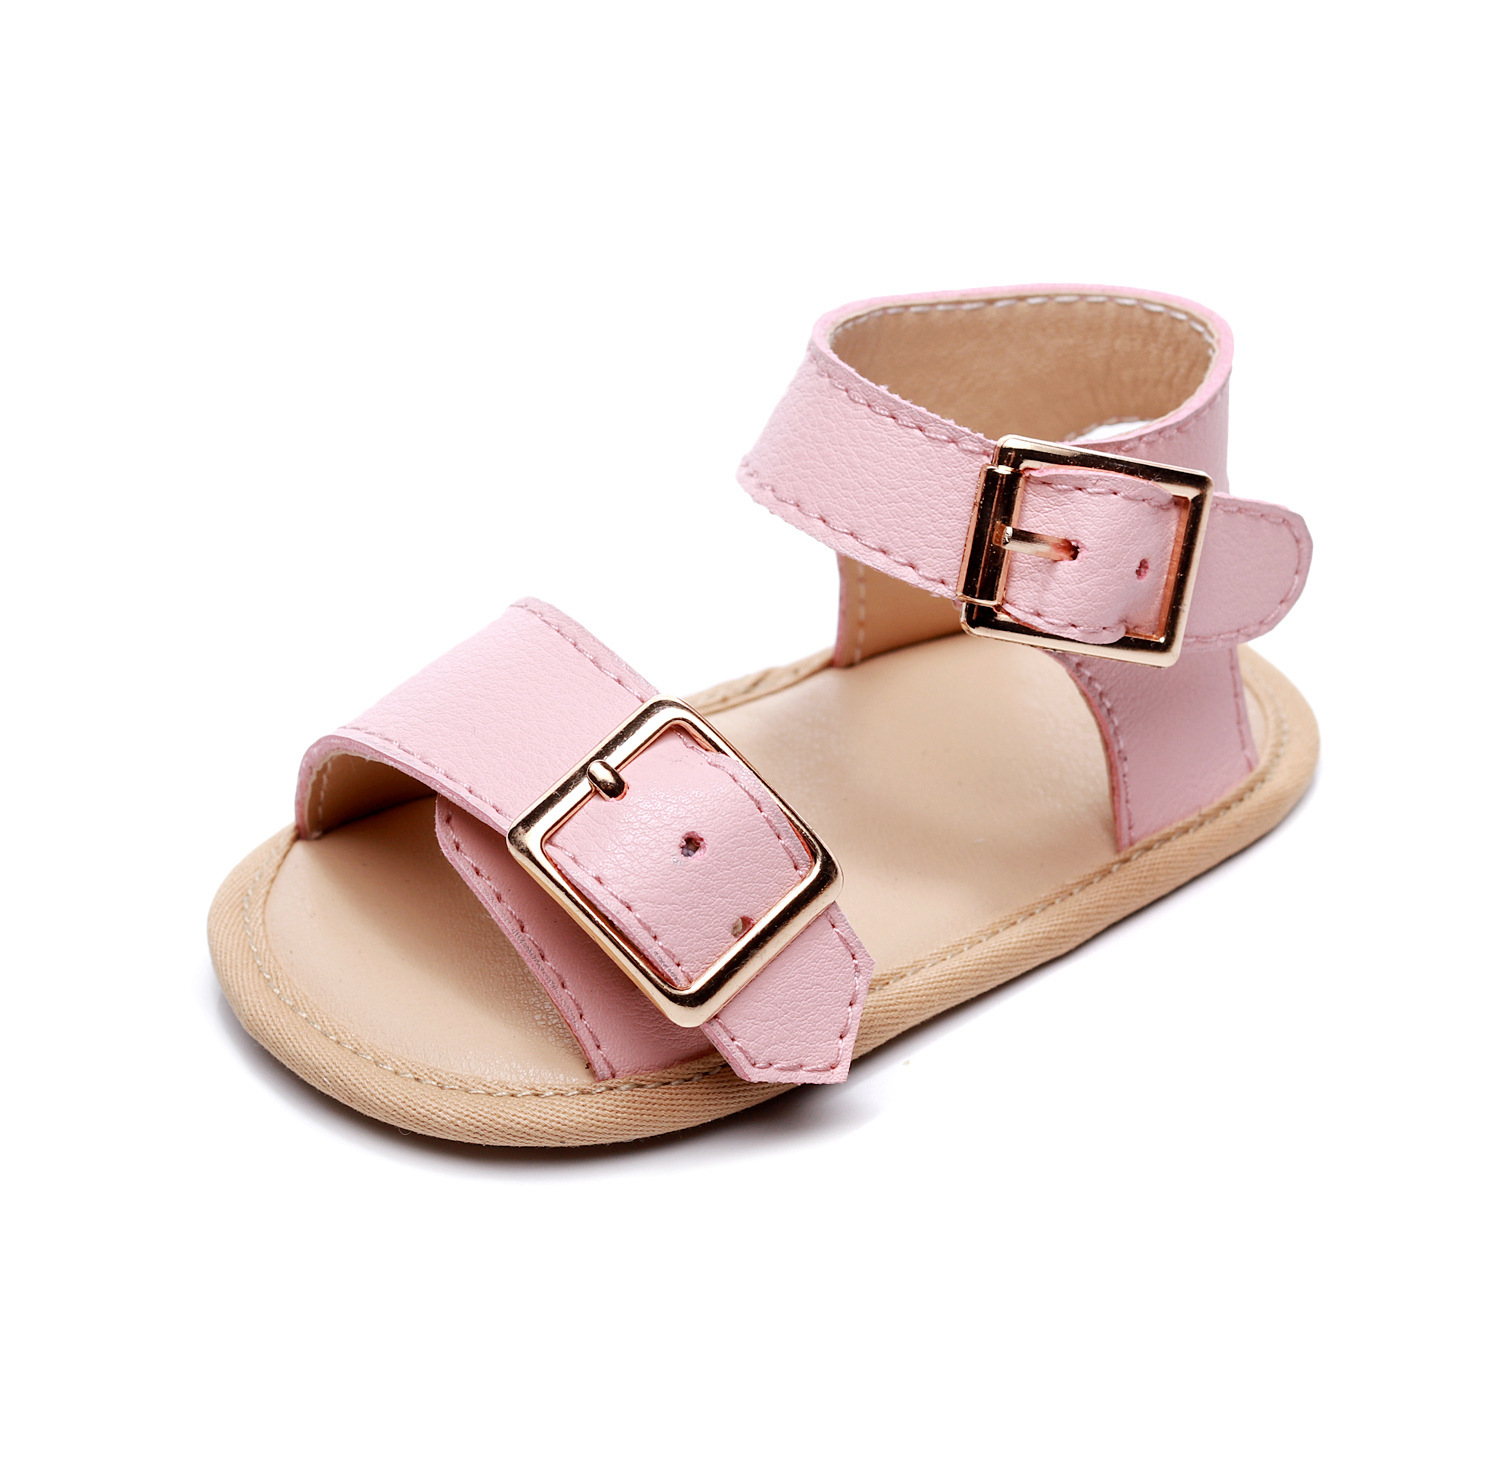 Summer New Bright Leather Baby Girls Sandals Princess Shoes Infant Toddler Girls Shoes Sandals for Baby Girls  Leather Clogs